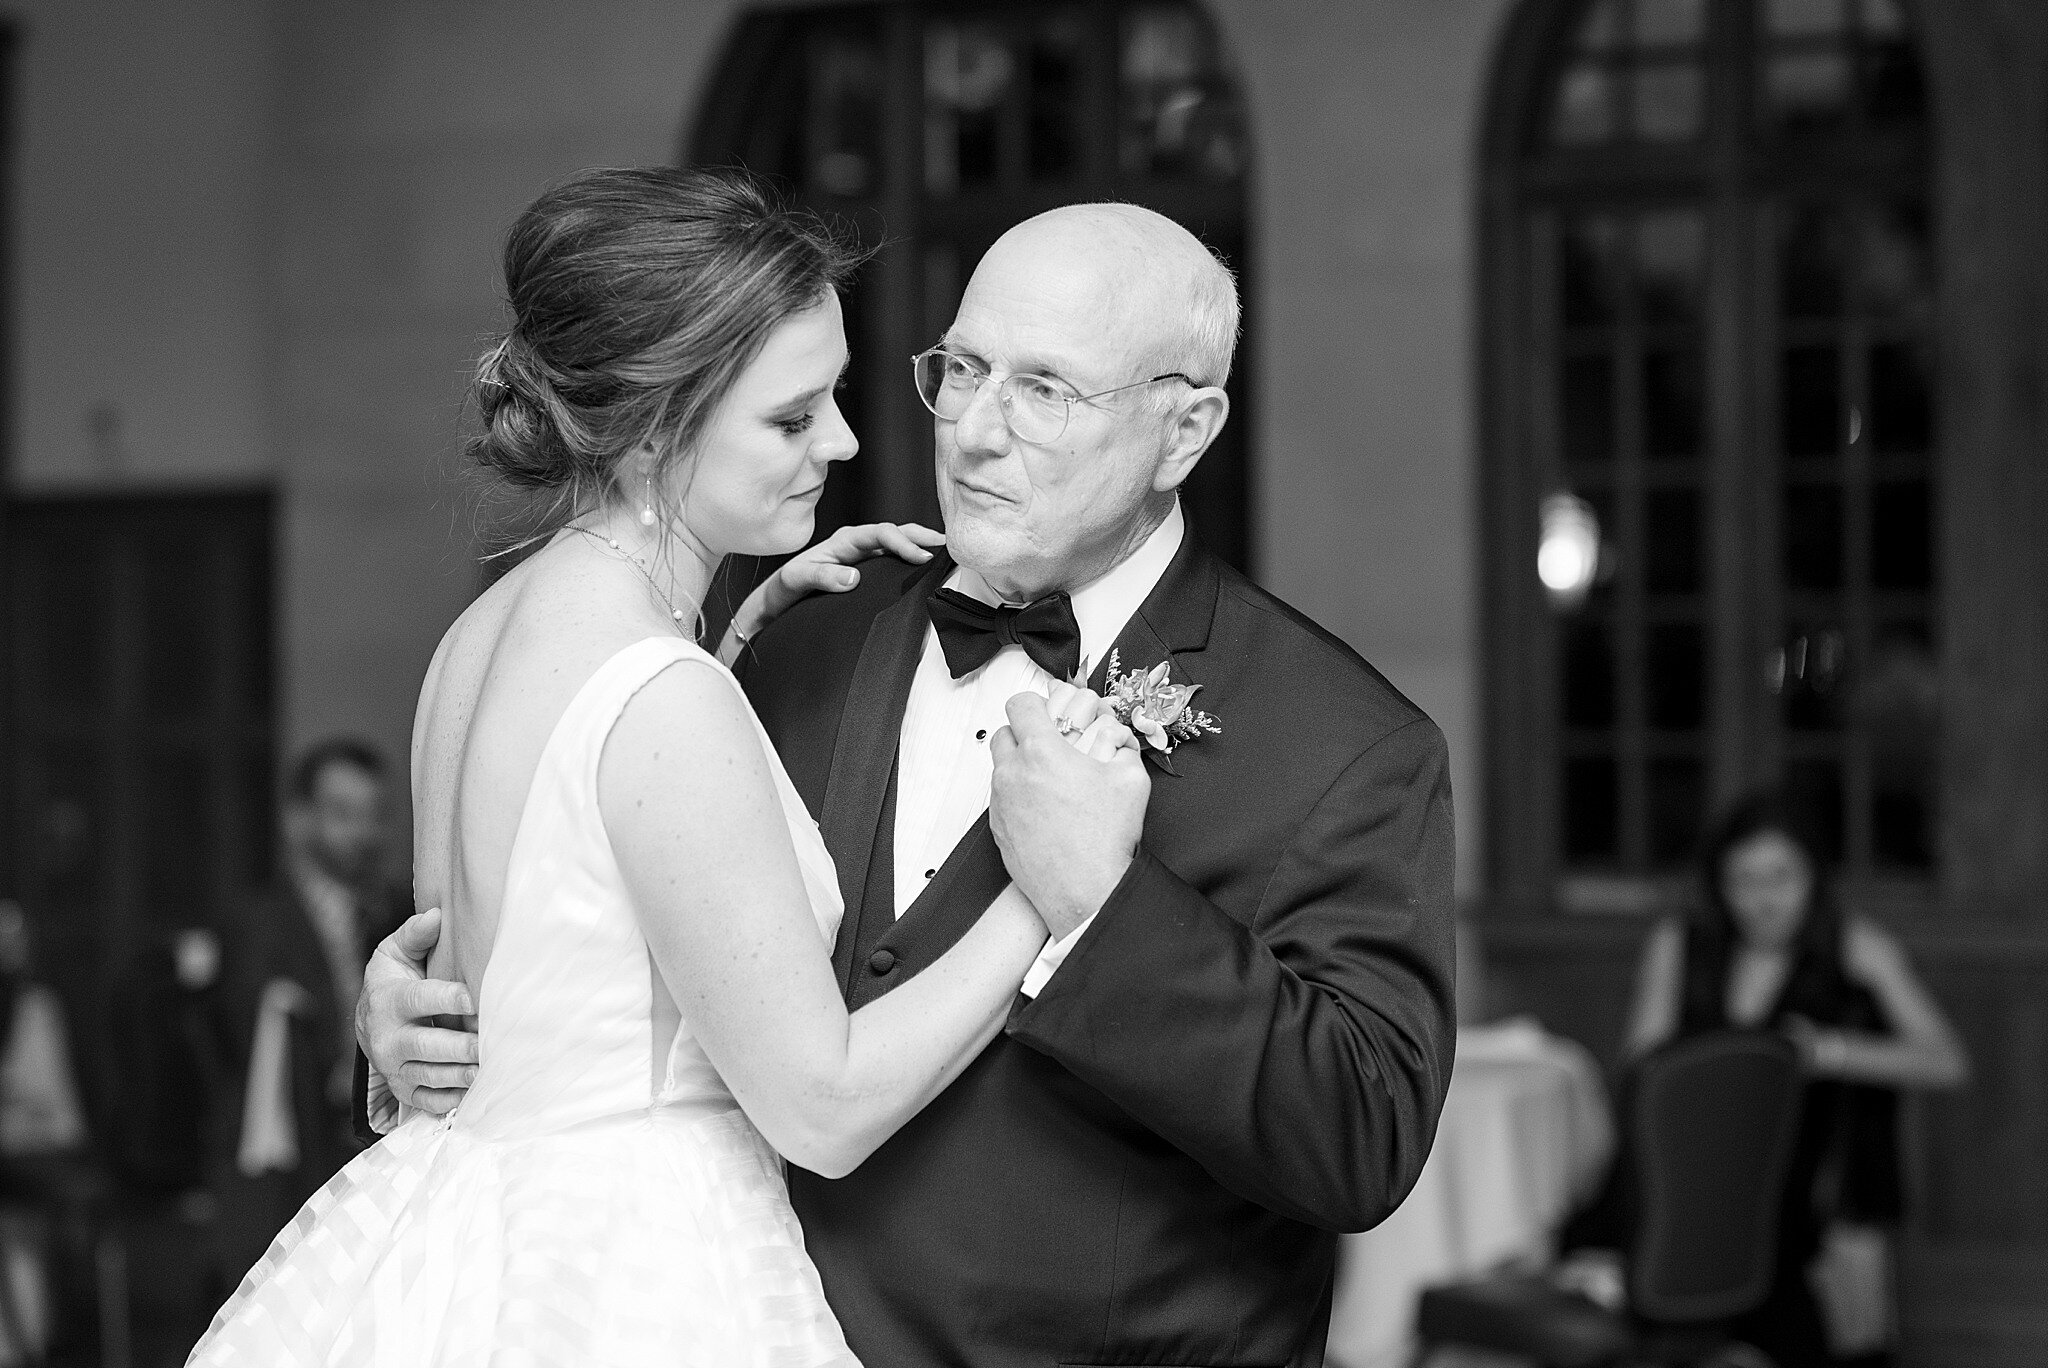 Father daughter first dance Aronimink golf Club Newtown Square Wedding